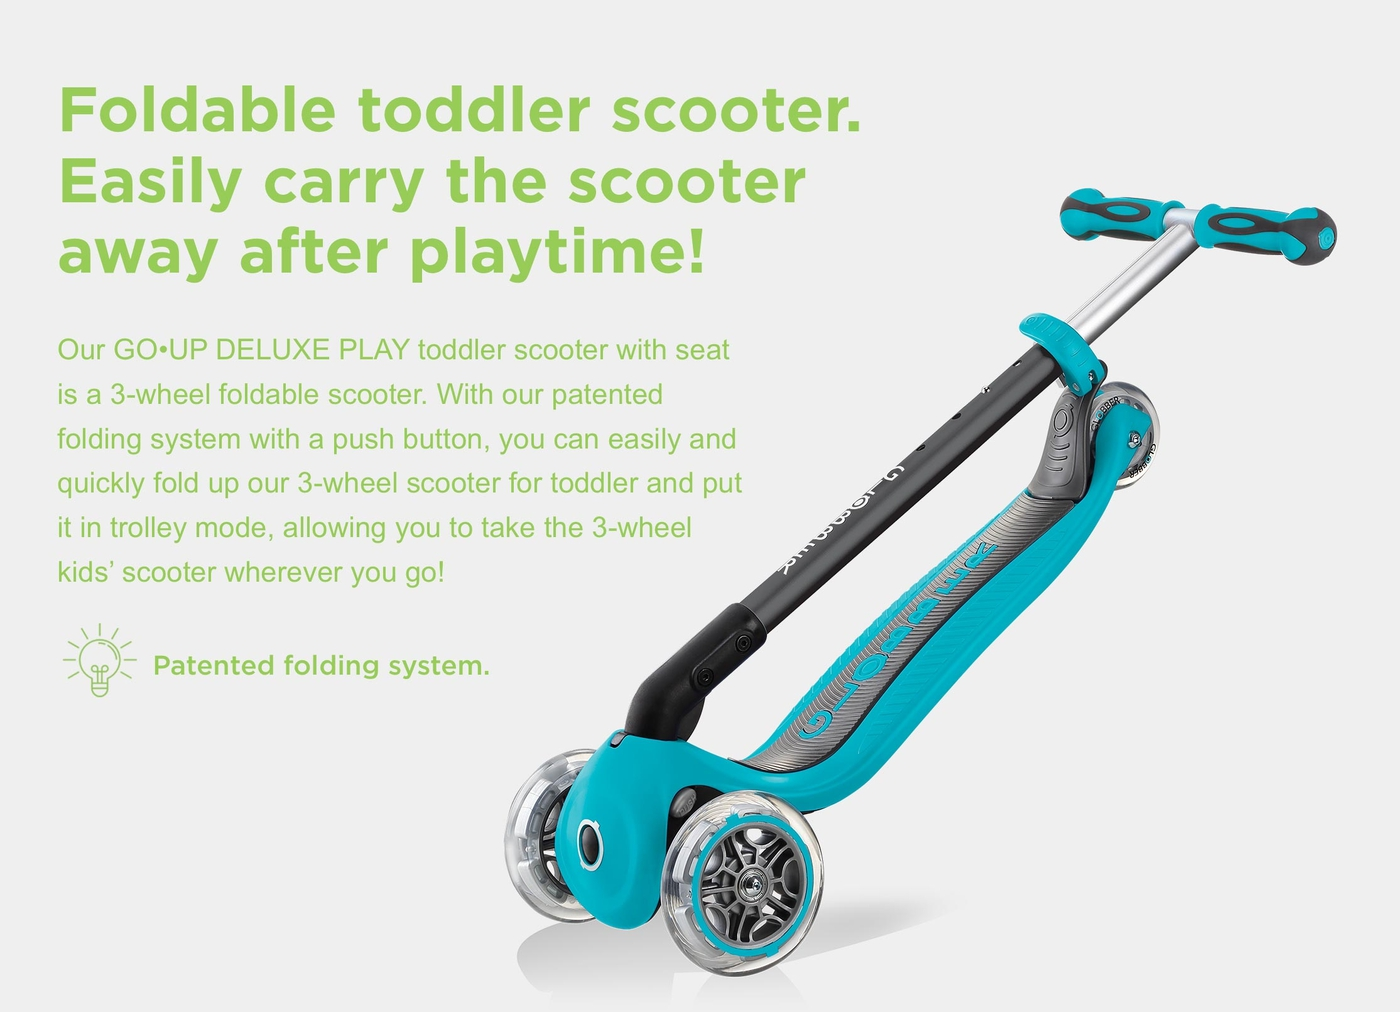 Foldable toddler scooter. Easily carry the scooter away after playtime! Our GO•UP DELUXE PLAY toddler scooter with seat is a 3-wheel foldable scooter. With our patented folding system with a push button, you can easily and quickly fold up our 3-wheel scooter for toddler and put it in trolley mode, allowing you to take the 3-wheel kids' scooter wherever you go!